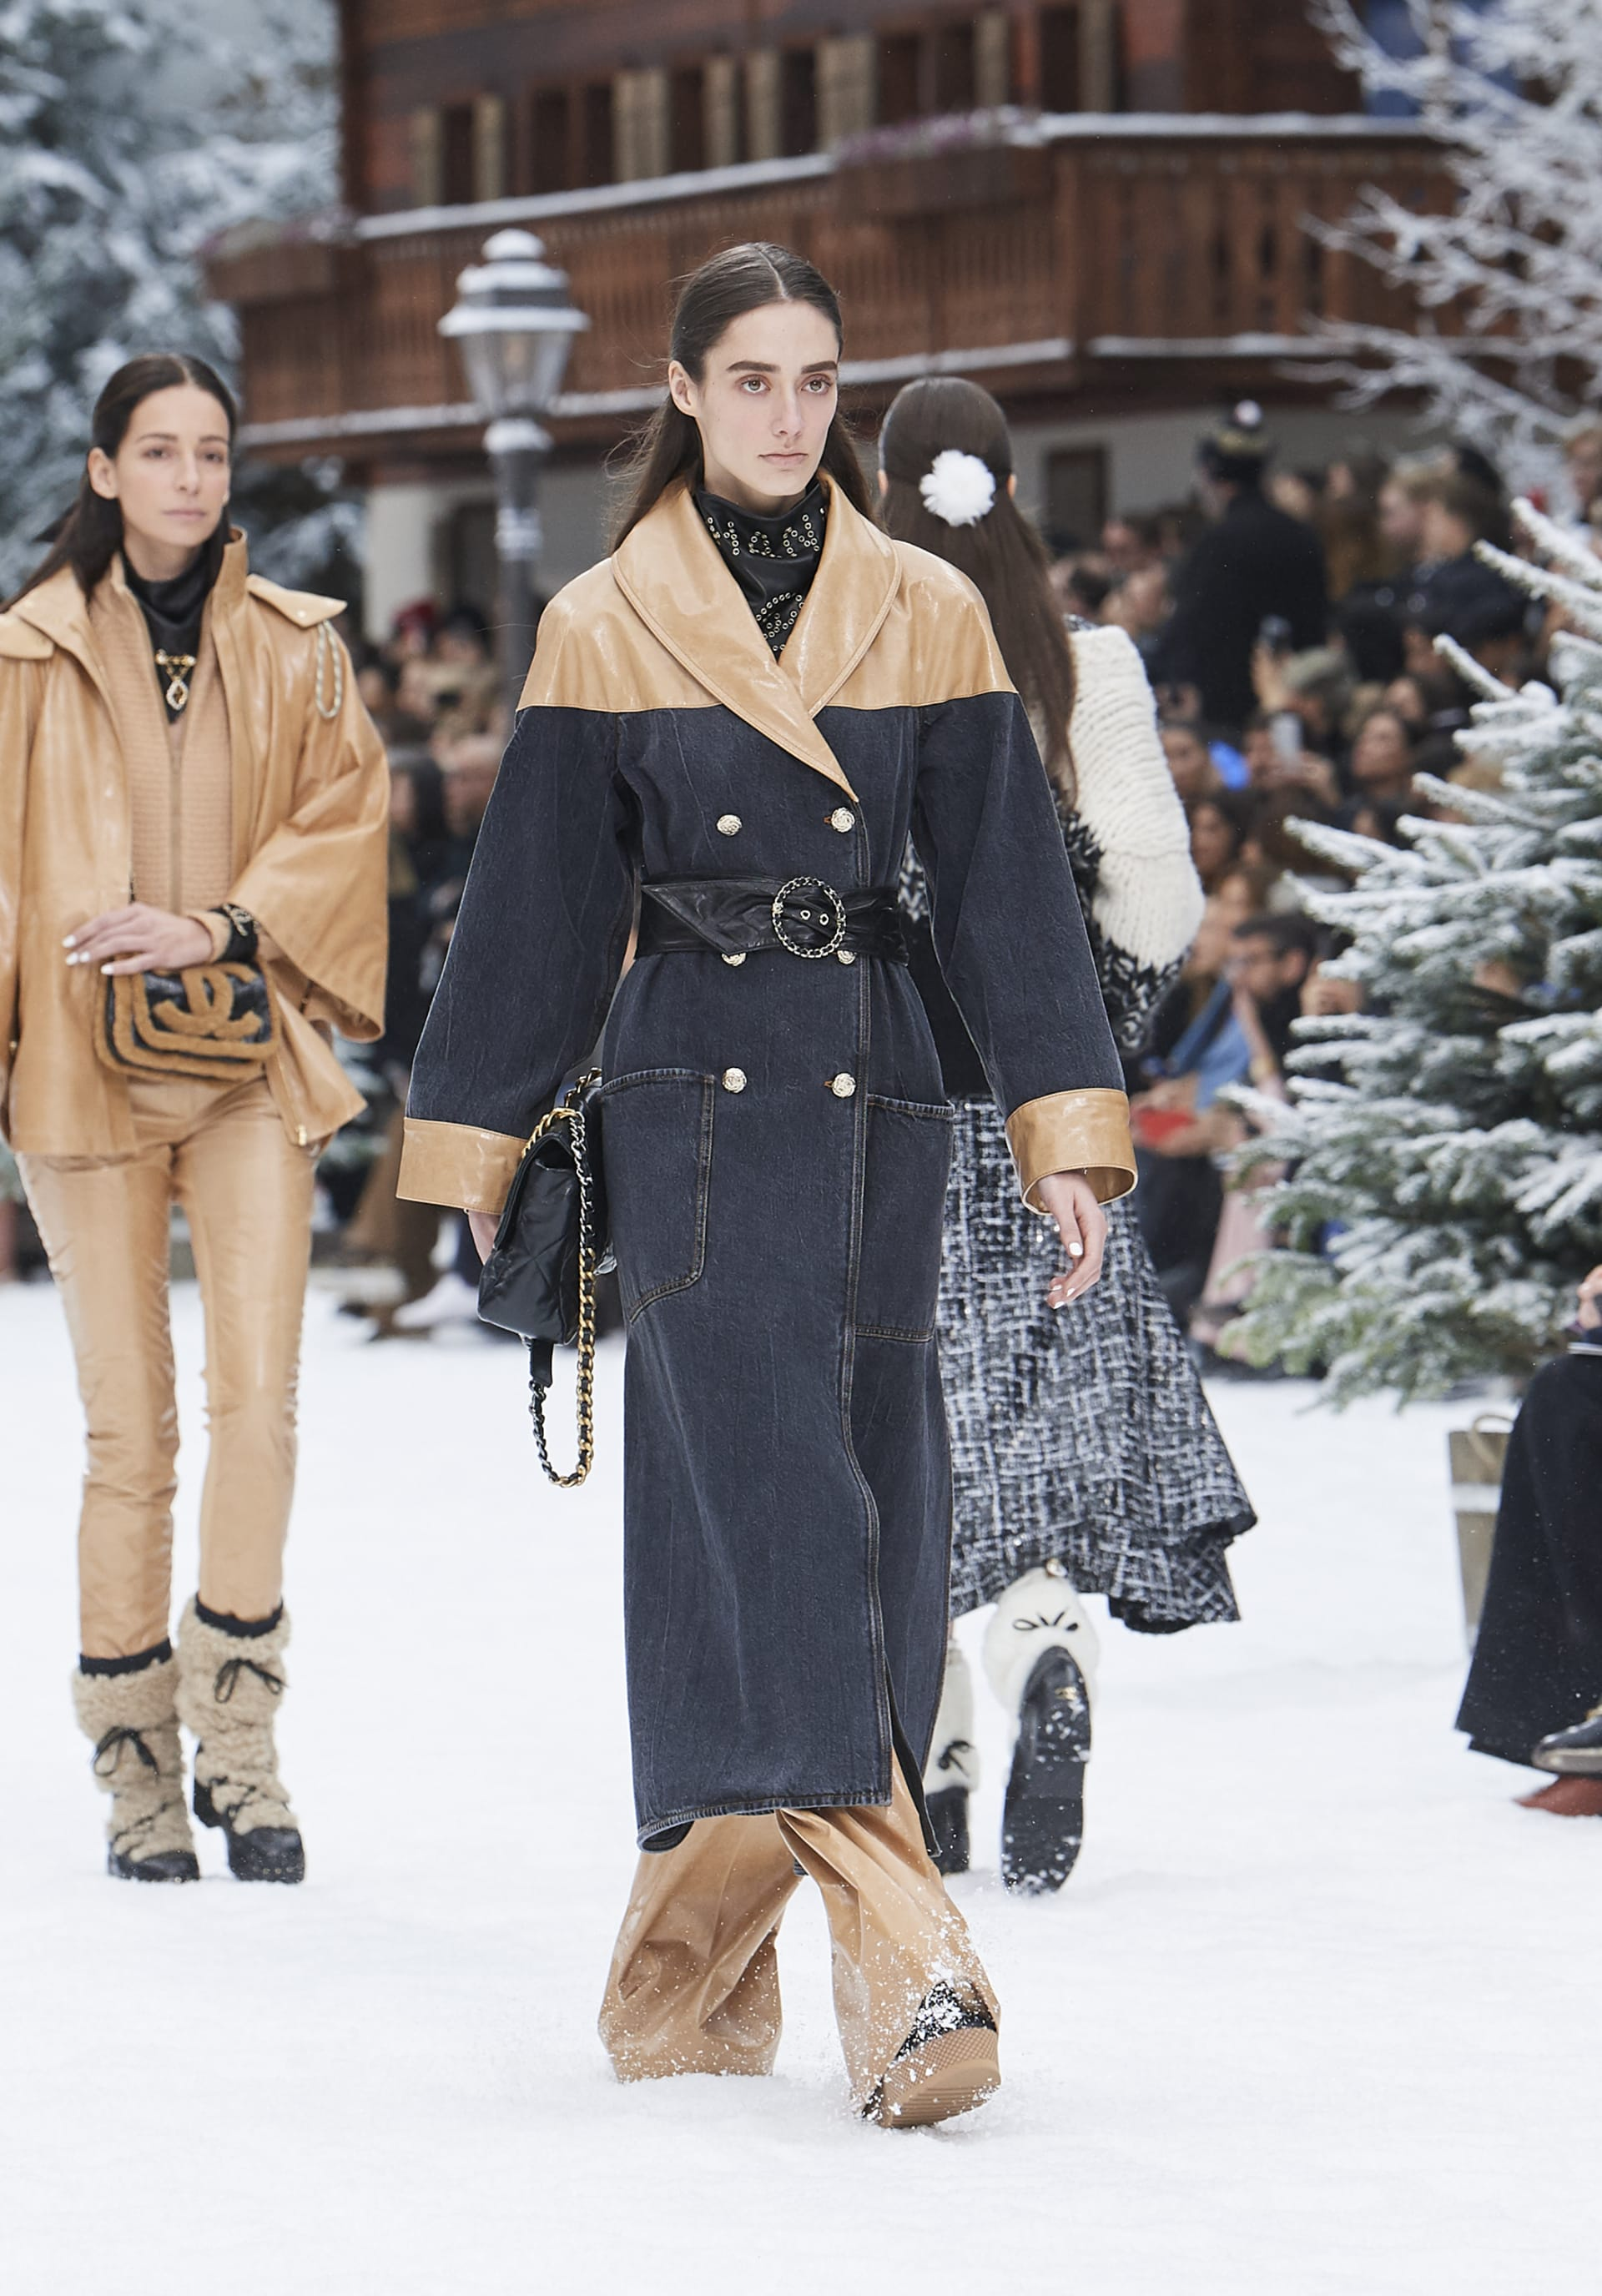 View 1 - Look 35 - Fall-Winter 2019/20